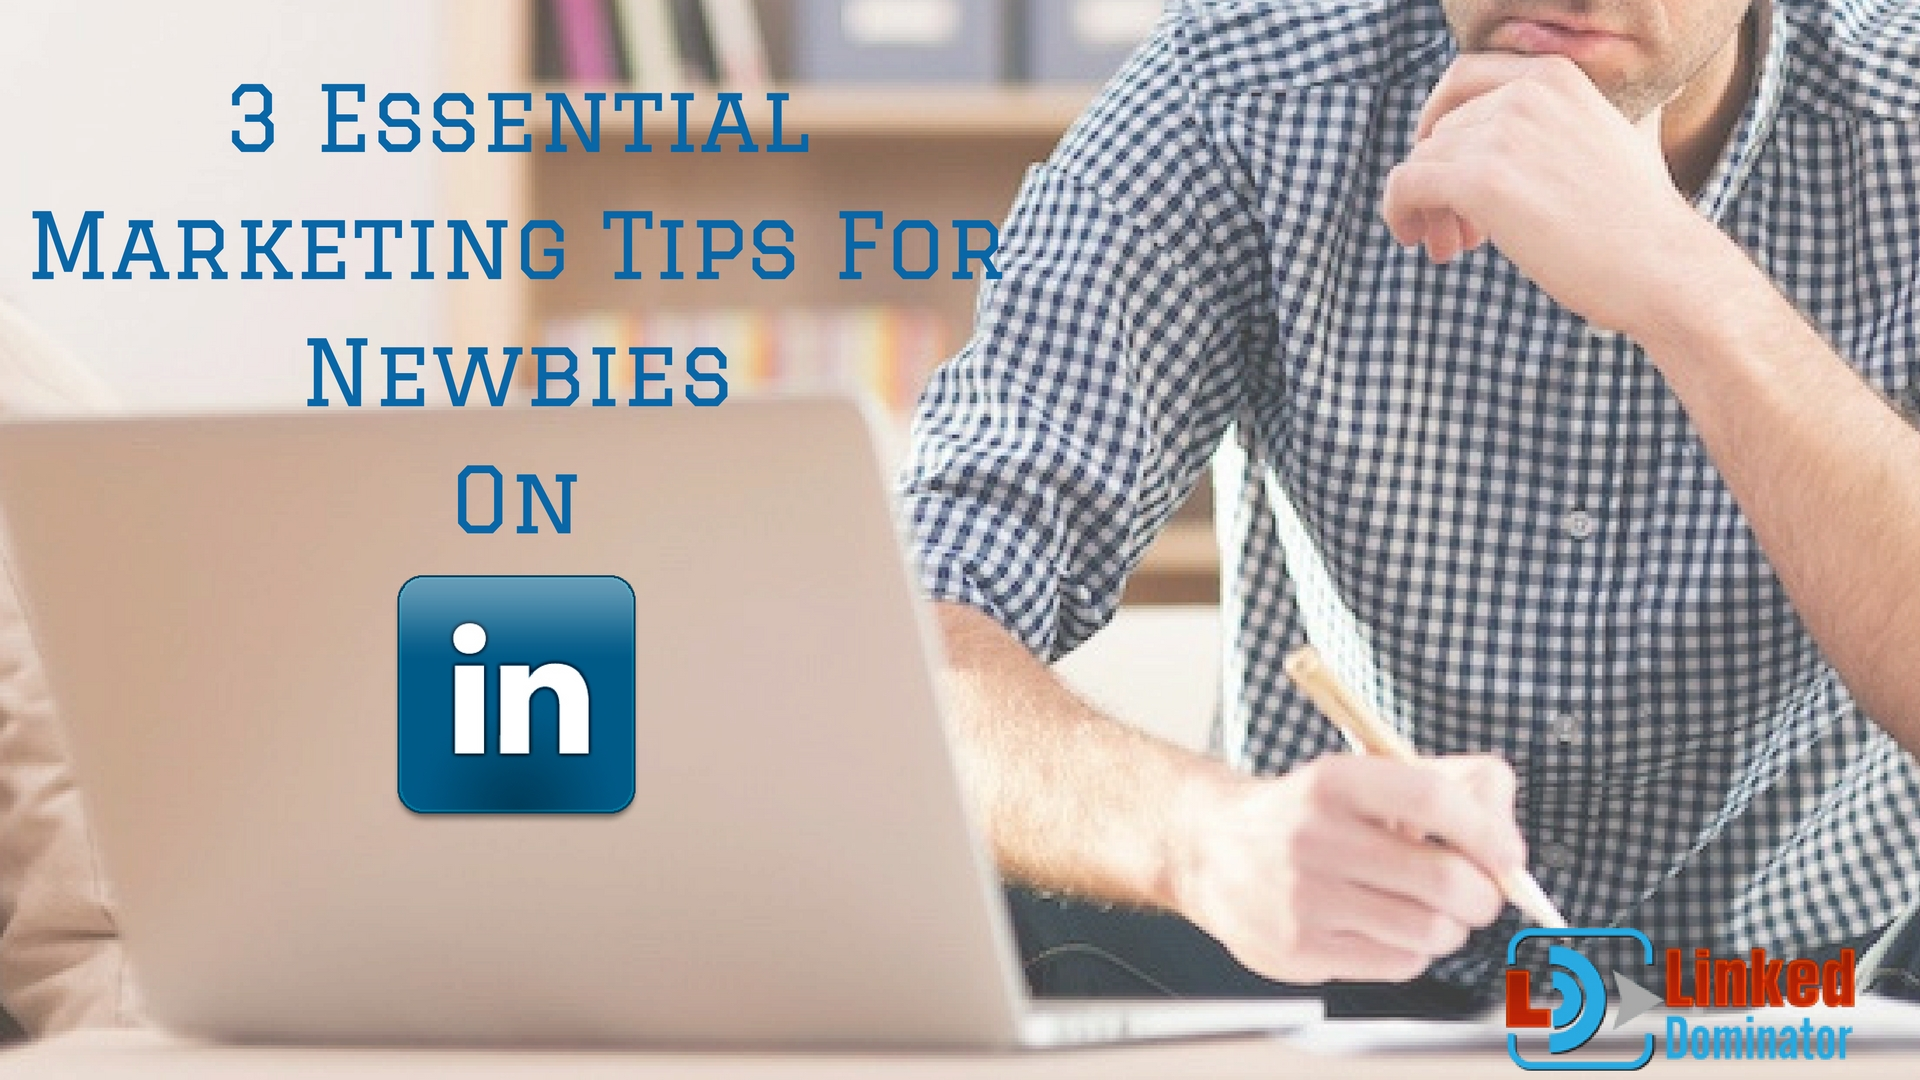 3 Essential LinkedIn Marketing Tips For Newbies